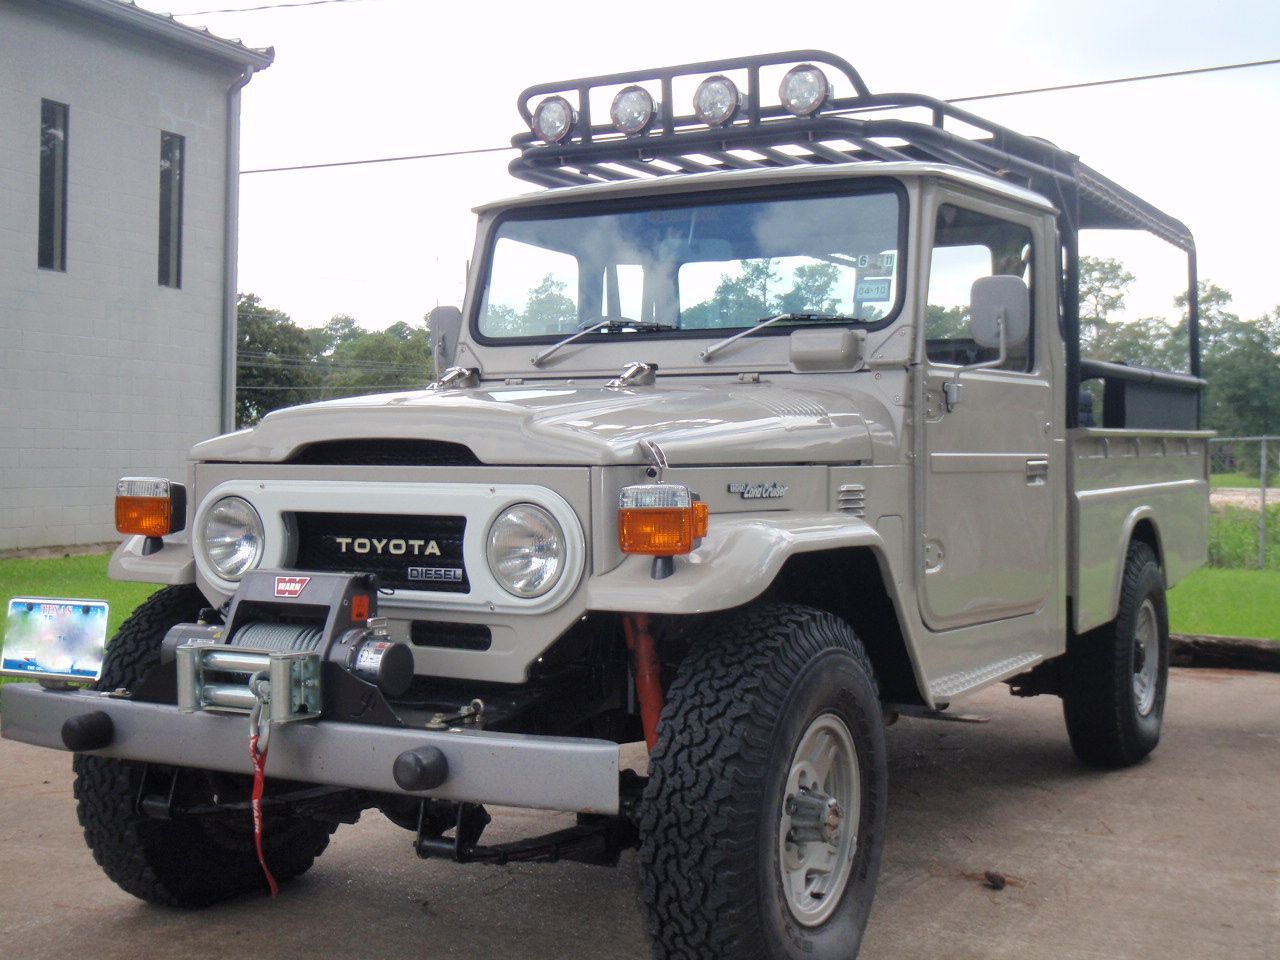 images toyota land cruiser fj40 for sale craigslist wallpaper toyota. Black Bedroom Furniture Sets. Home Design Ideas